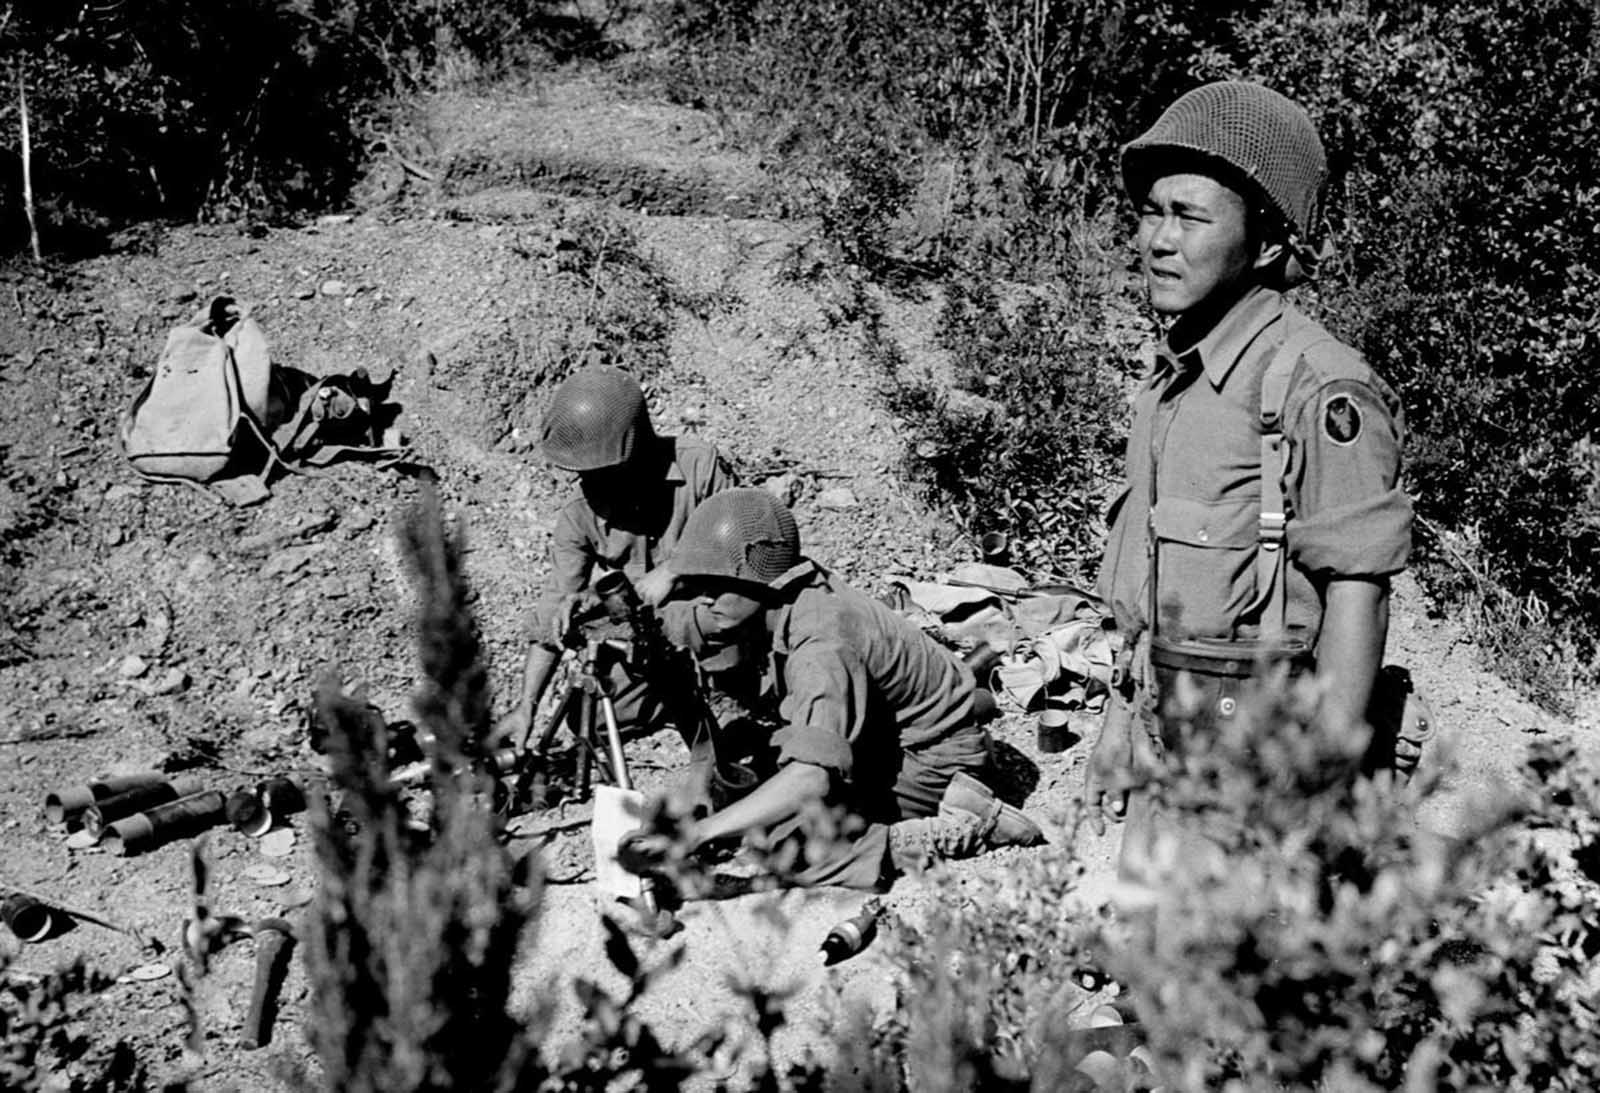 Soldiers launch mortars at German snipers in Italy. Aug. 25, 1944.